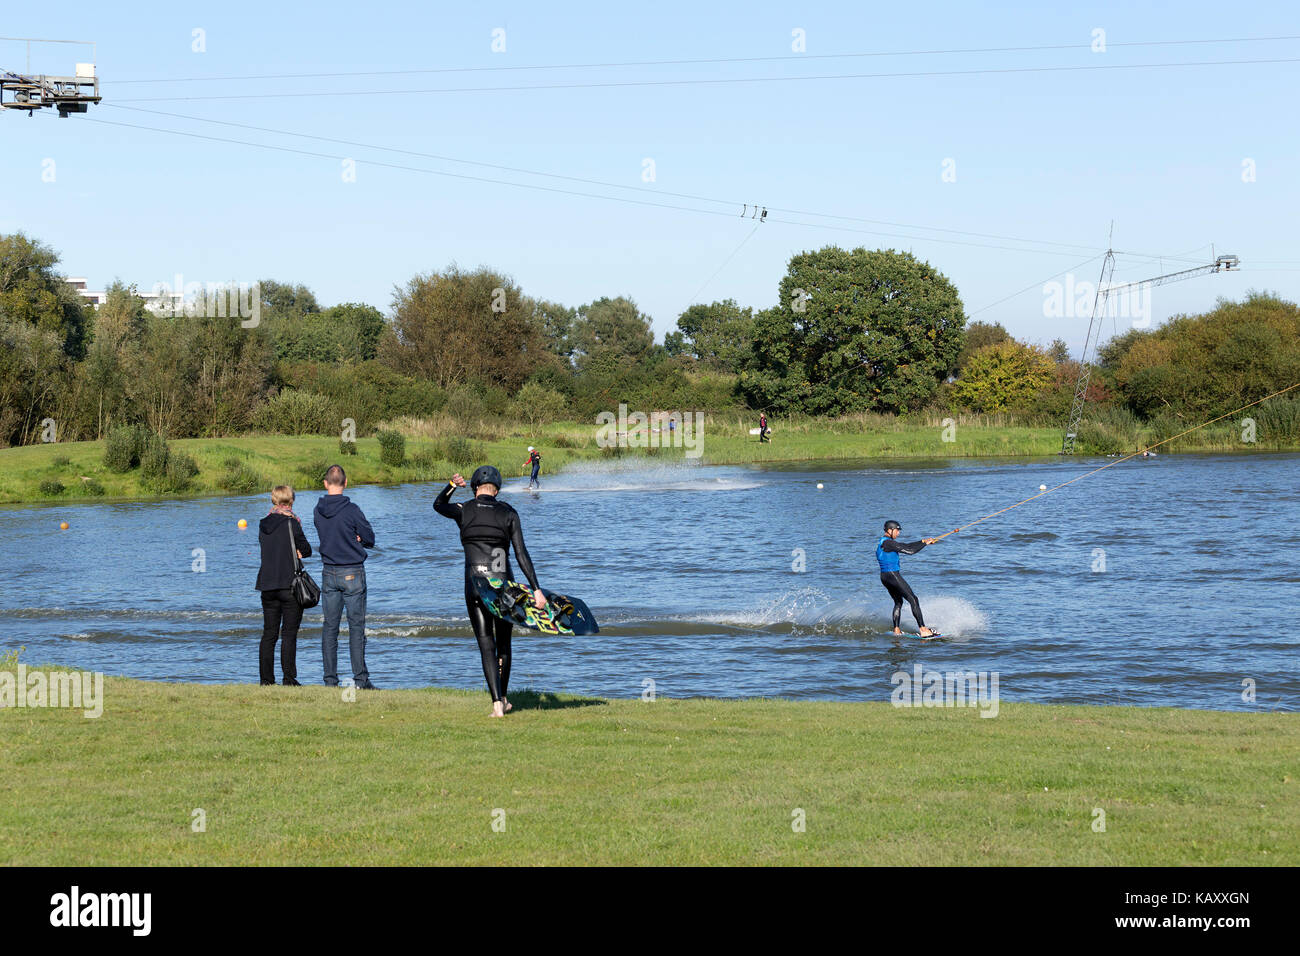 Wakepark, Baltic Sea Spa Damp, Schleswig-Holstein, Germany Stock Photo